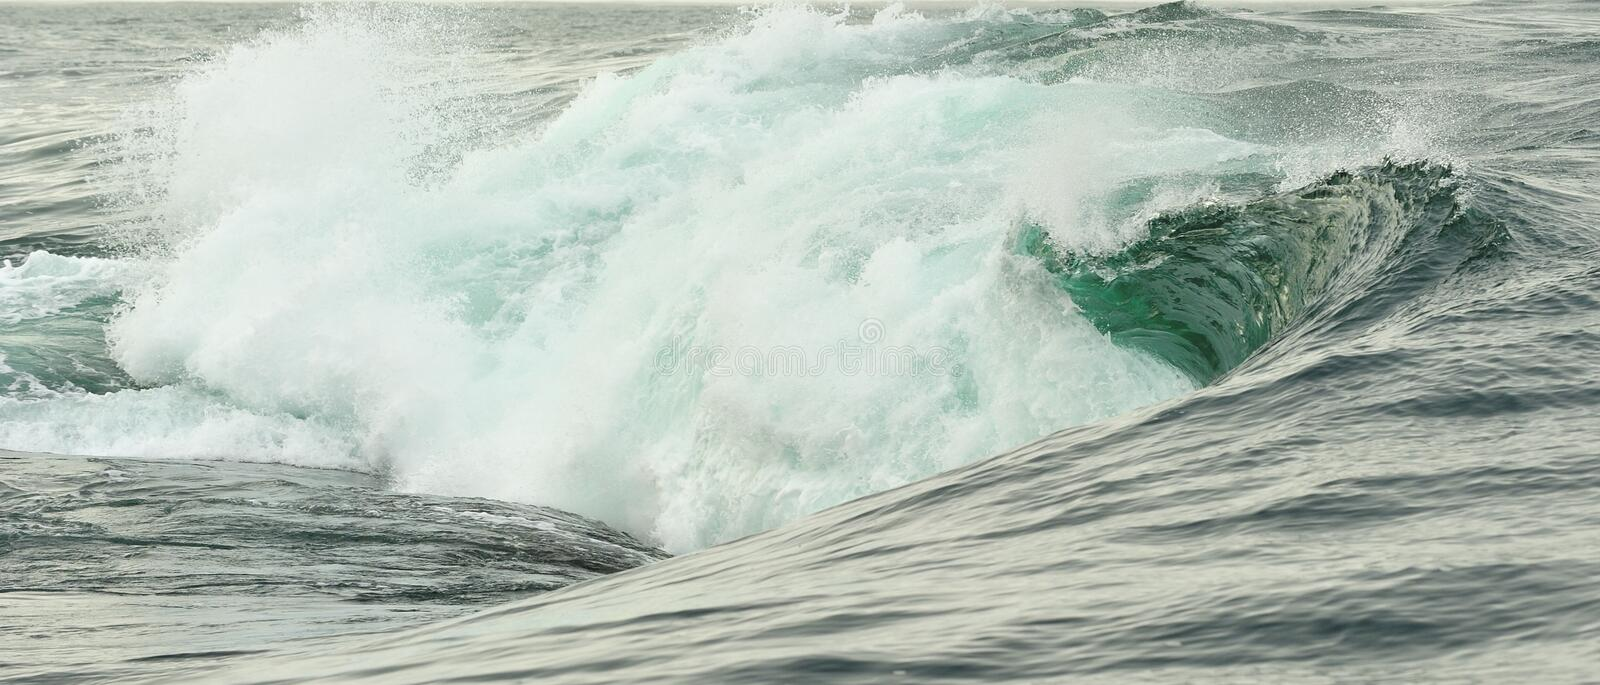 Powerful ocean wave breaking. Wave on the surface of the ocean. Wave breaks on a shallow bank. Natural background royalty free stock image